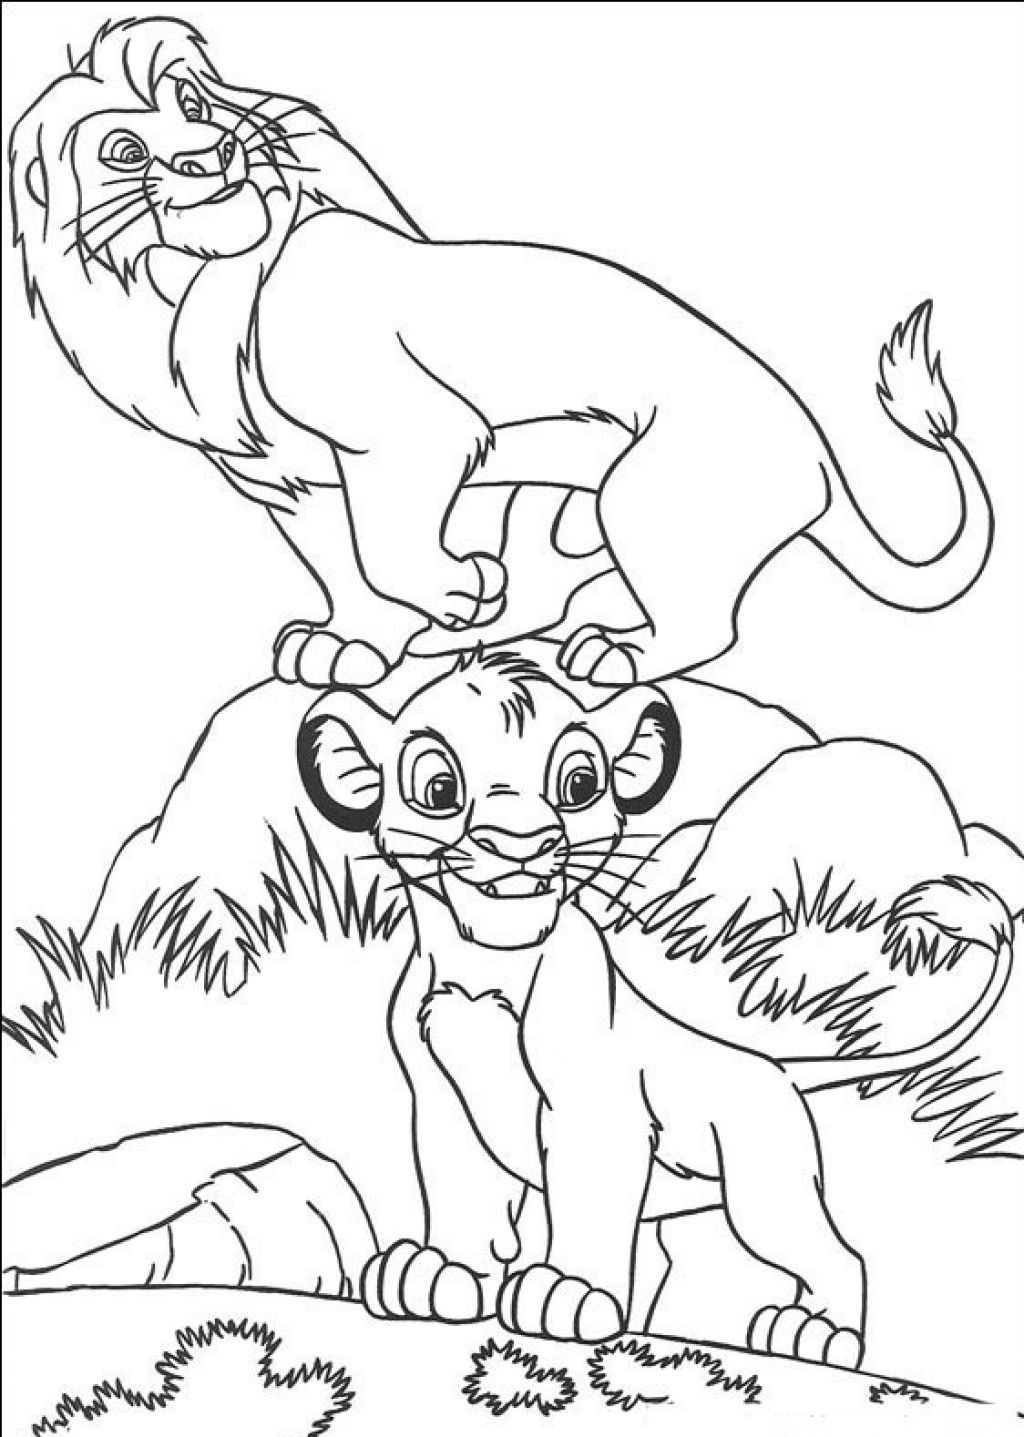 el coloring pages - photo#50